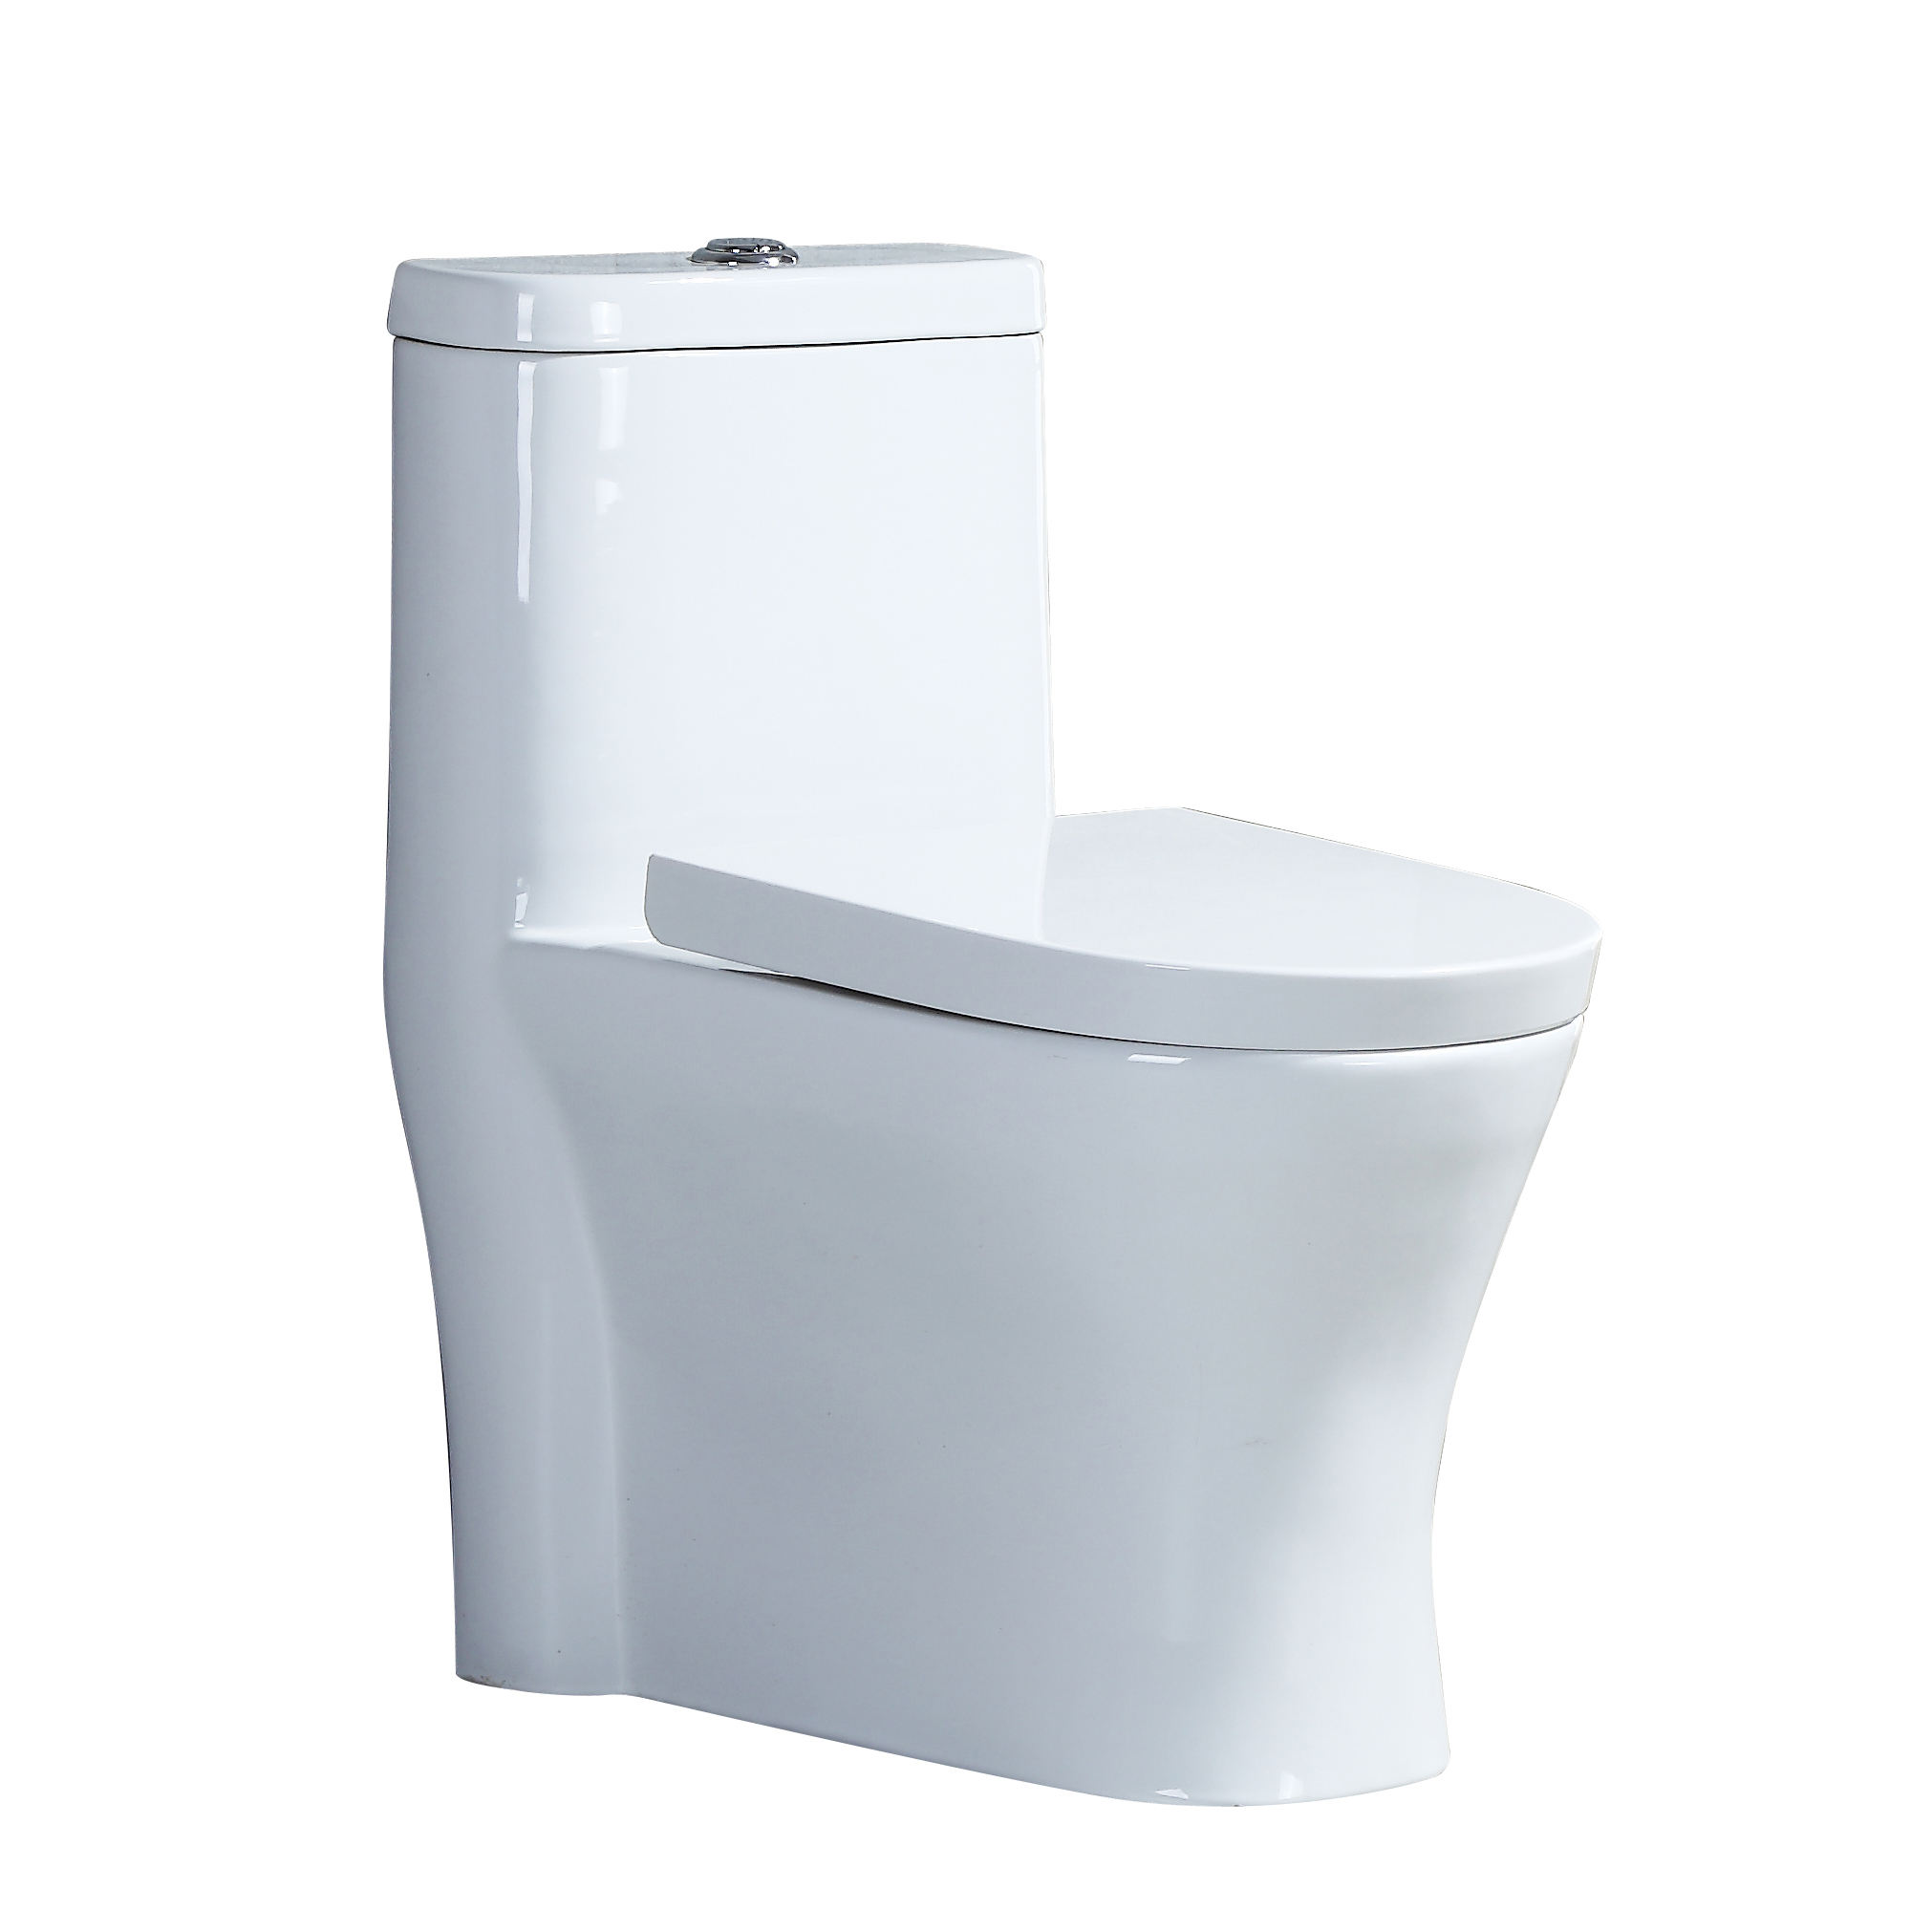 Water closet wash down arrow toilet sanitary ware